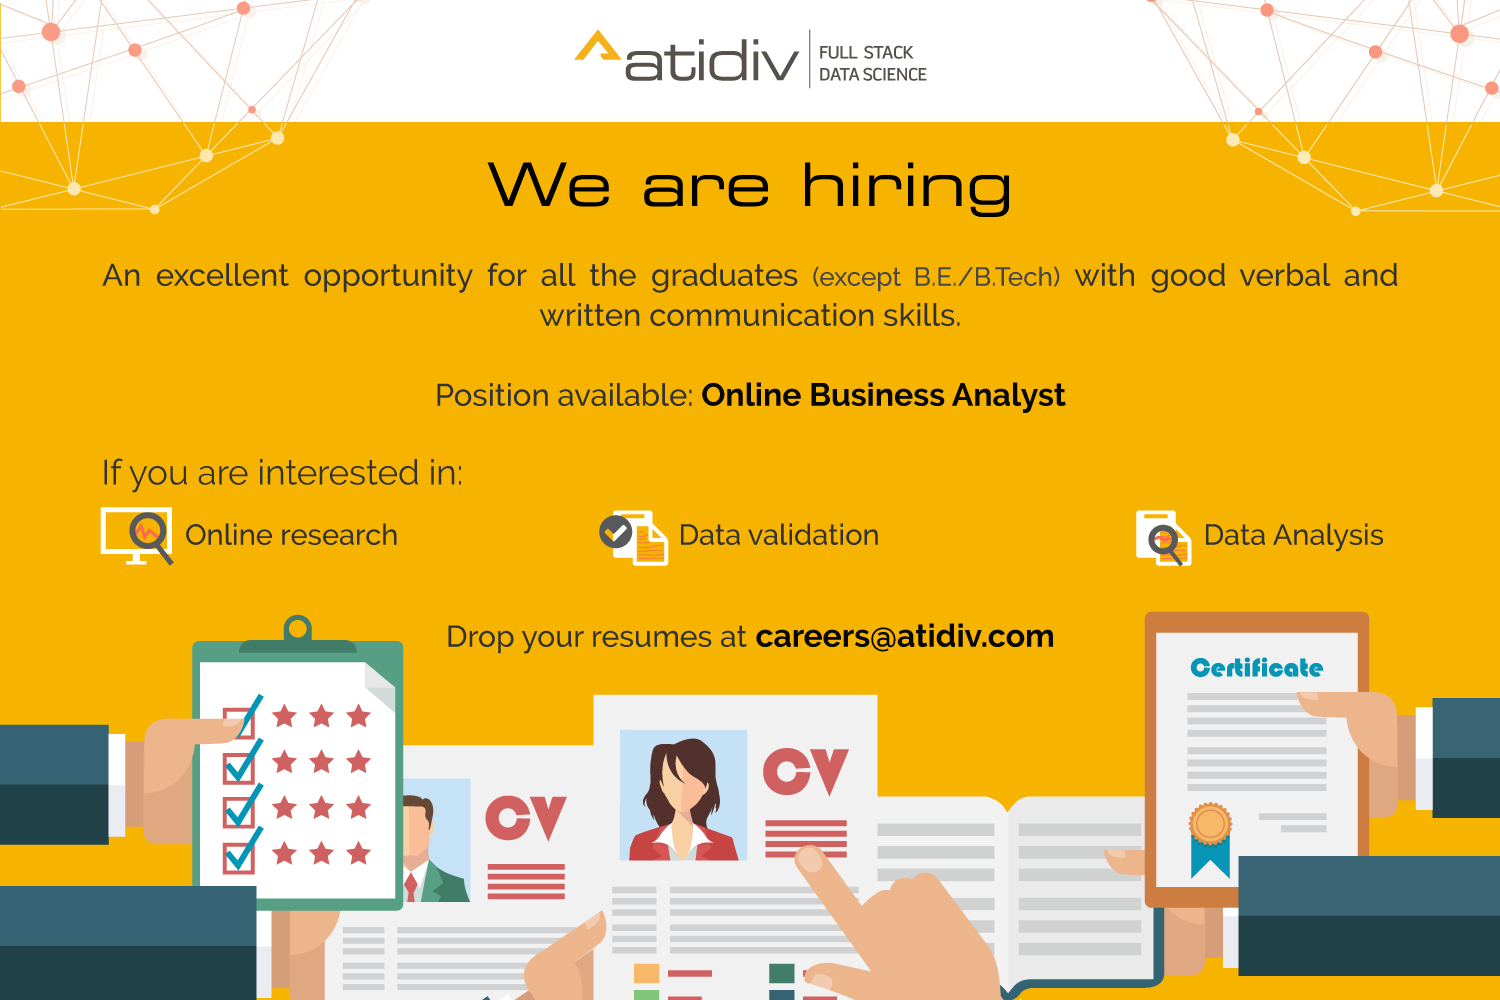 Atidiv is a provider of data science, product development